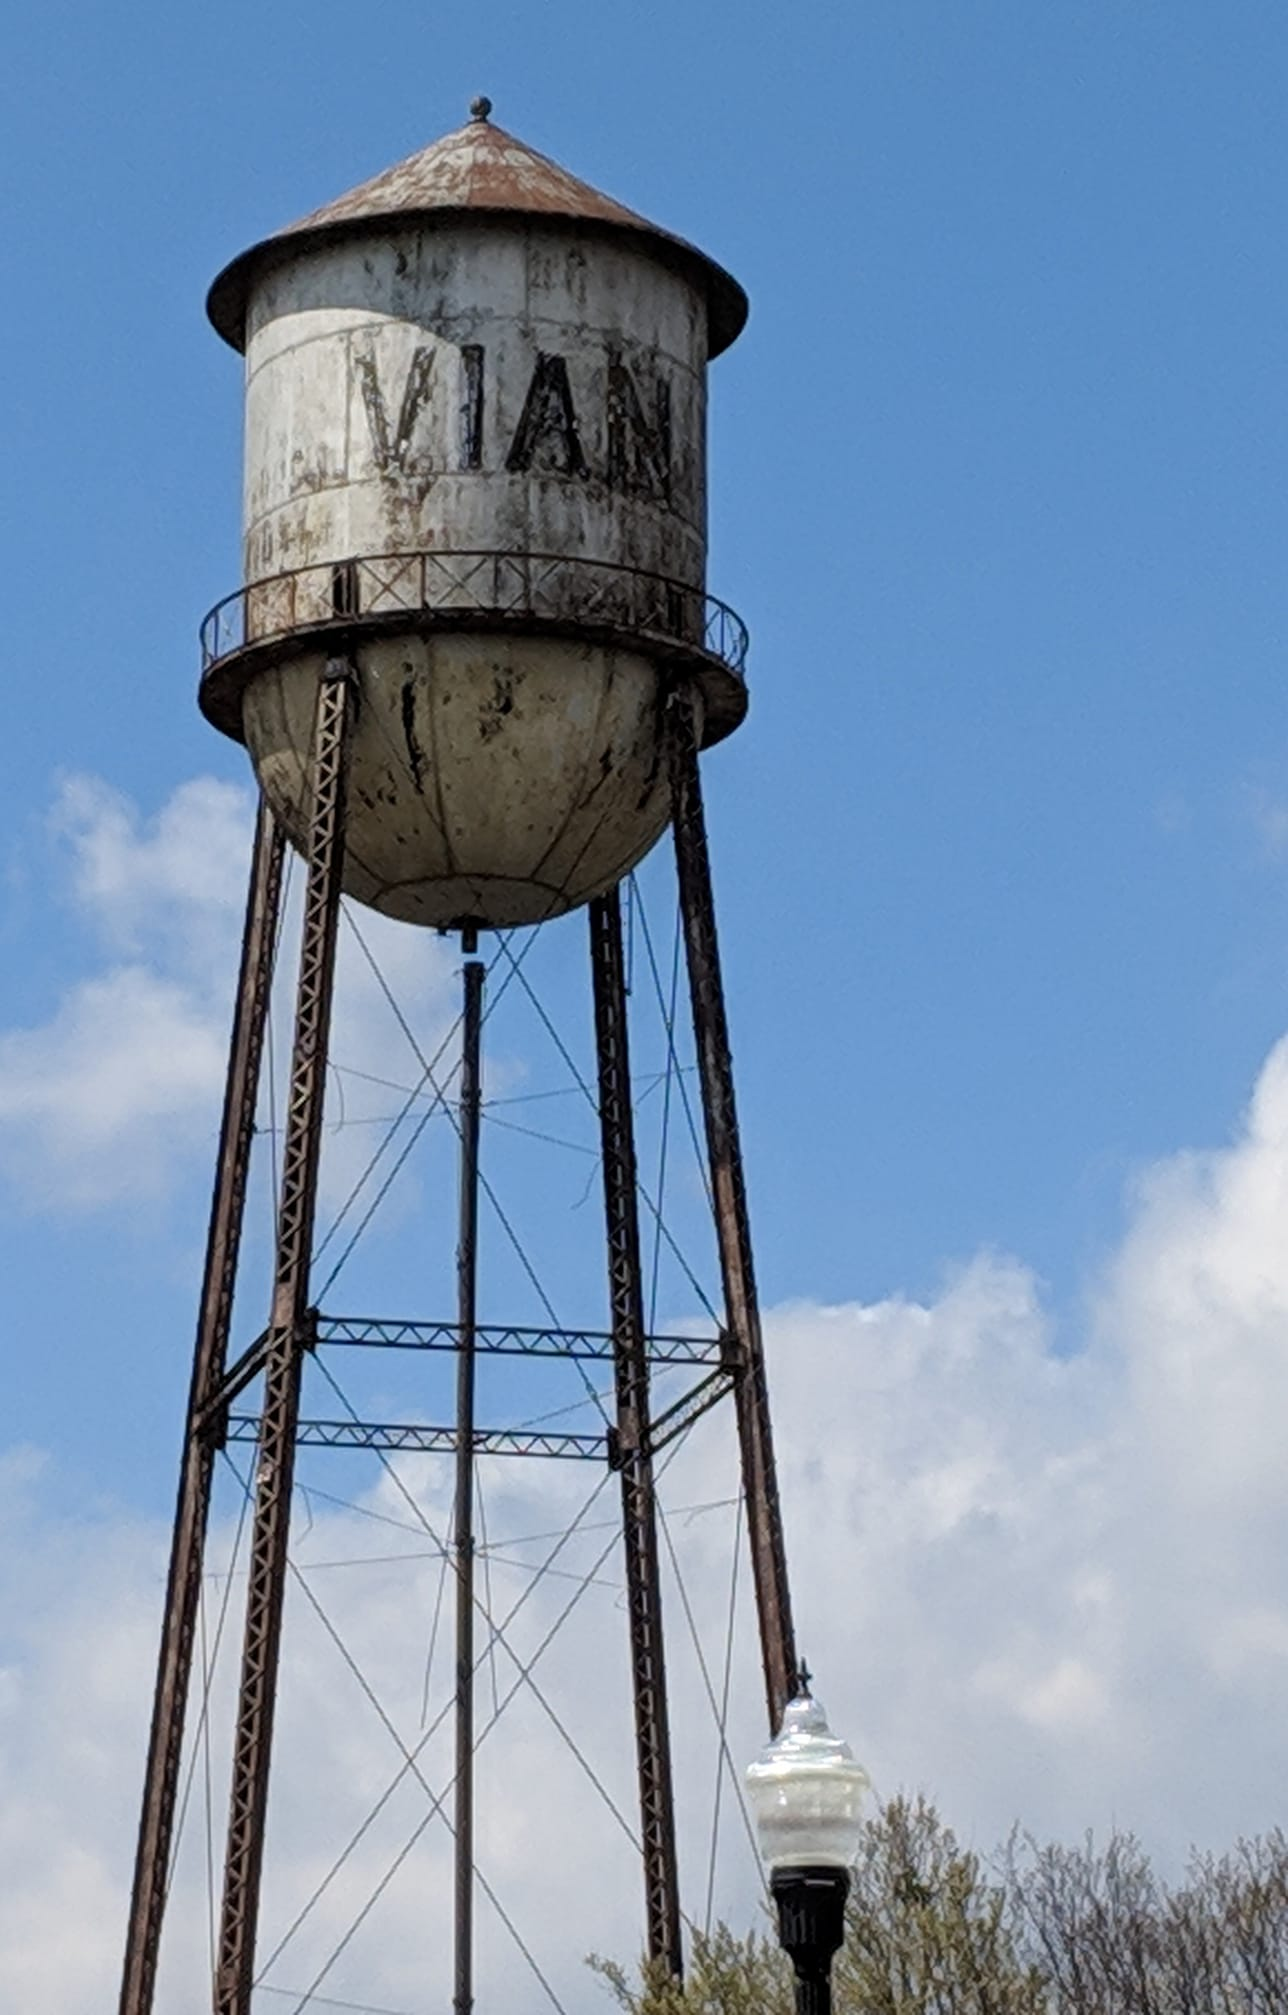 vian water tower.jpg